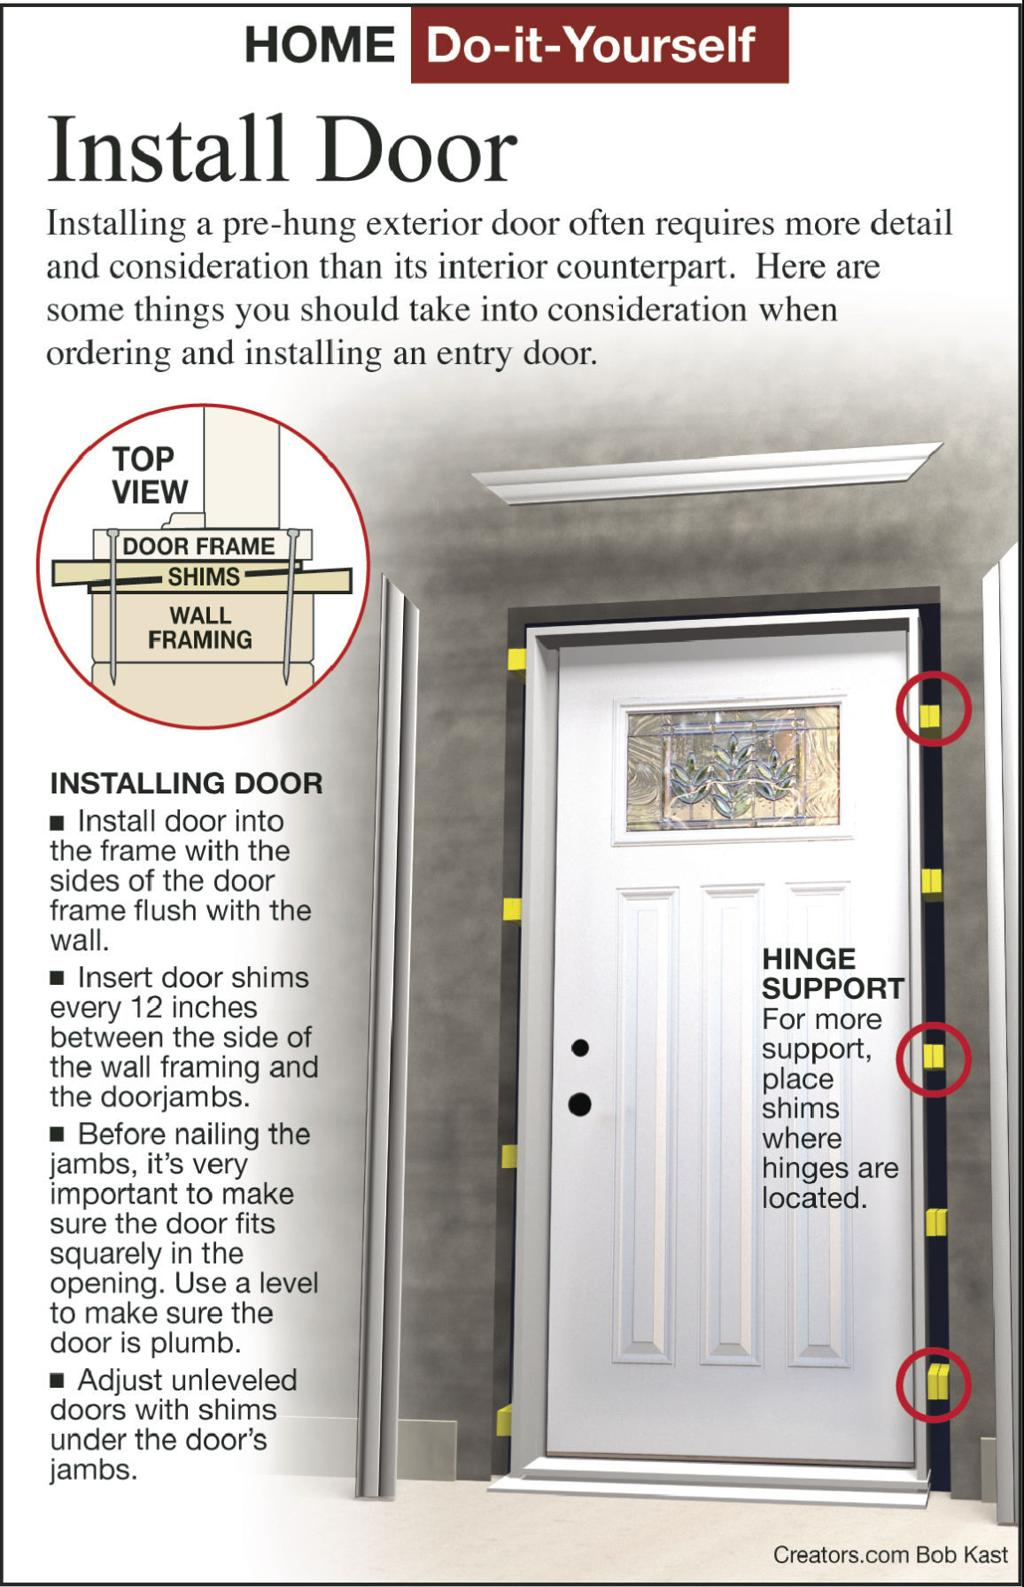 Exterior Pre Hung Door Installation Is Best For Do It Yourselfers Siouxland Homes Siouxcityjournal